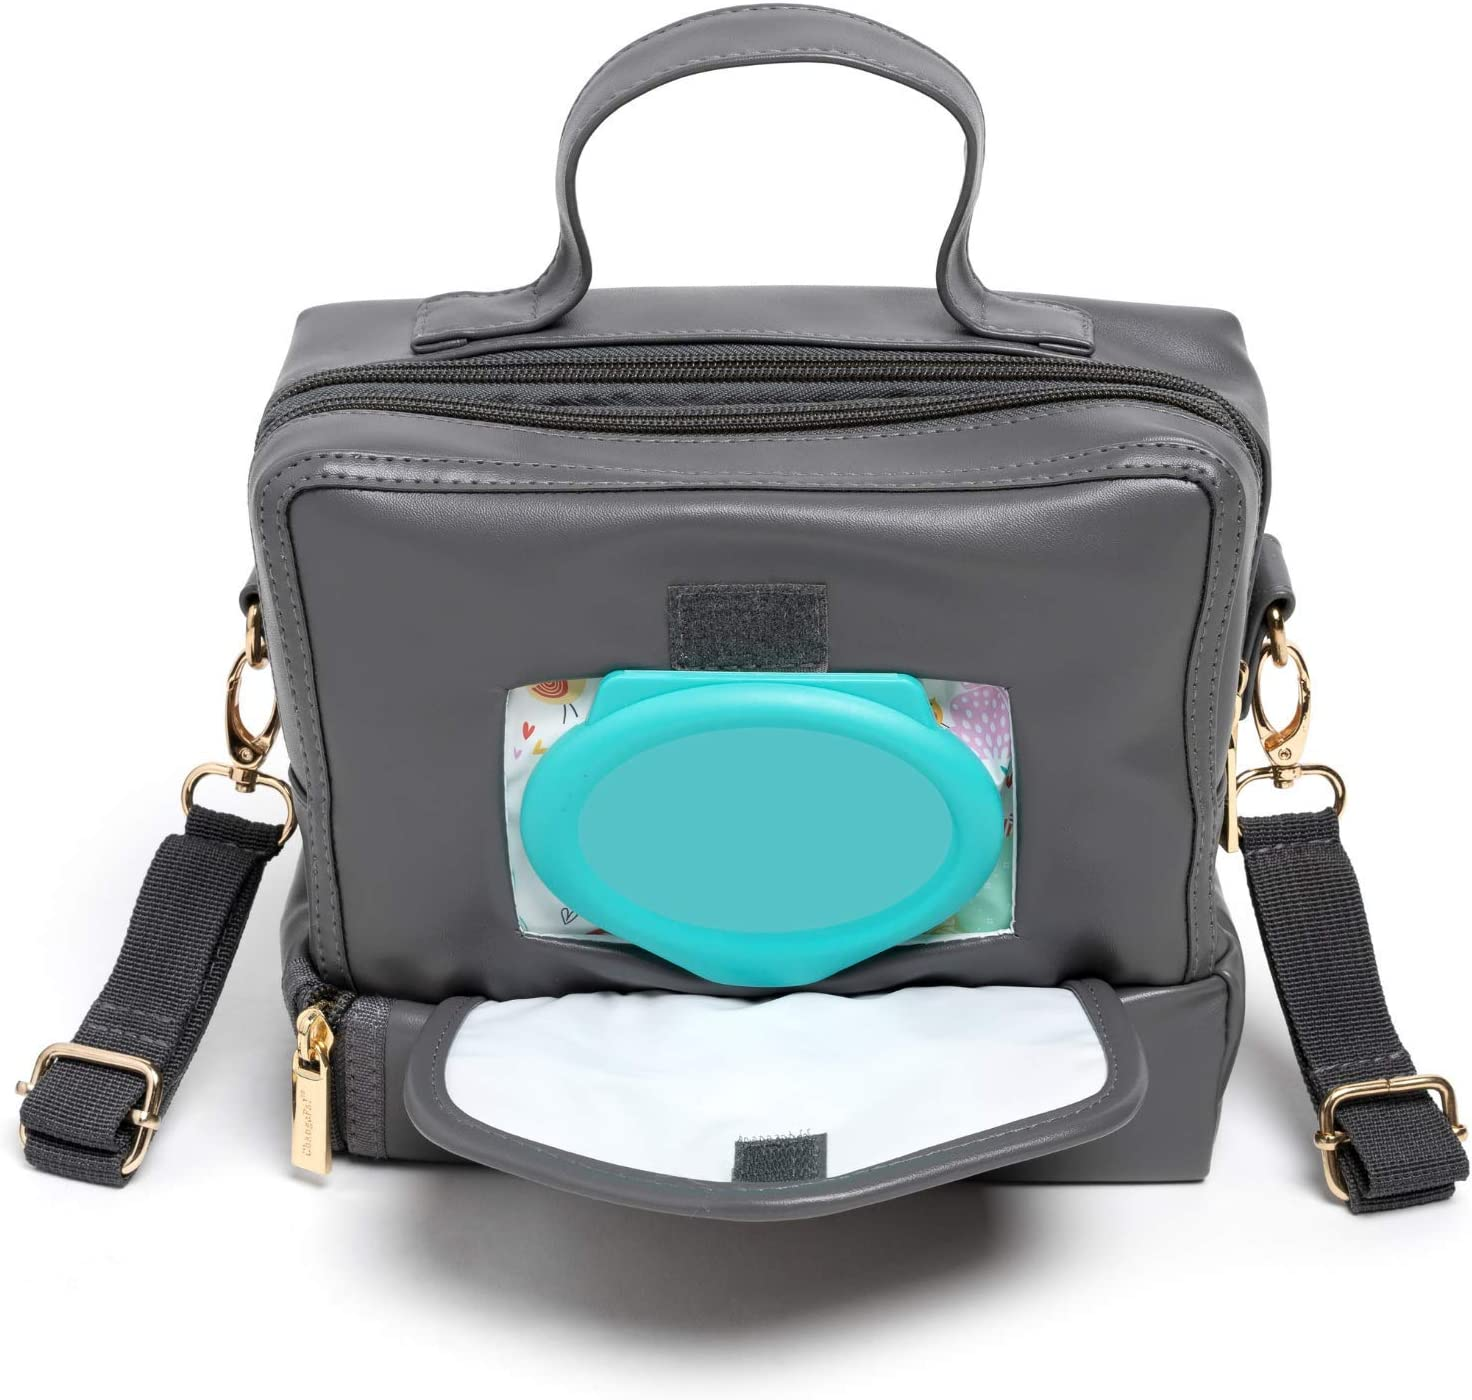 Mini Diaper Bag - Small Crossbody Baby Changing Station Bag with Wipes Compartment, Changing Pad, Stroller & Shoulder Strap